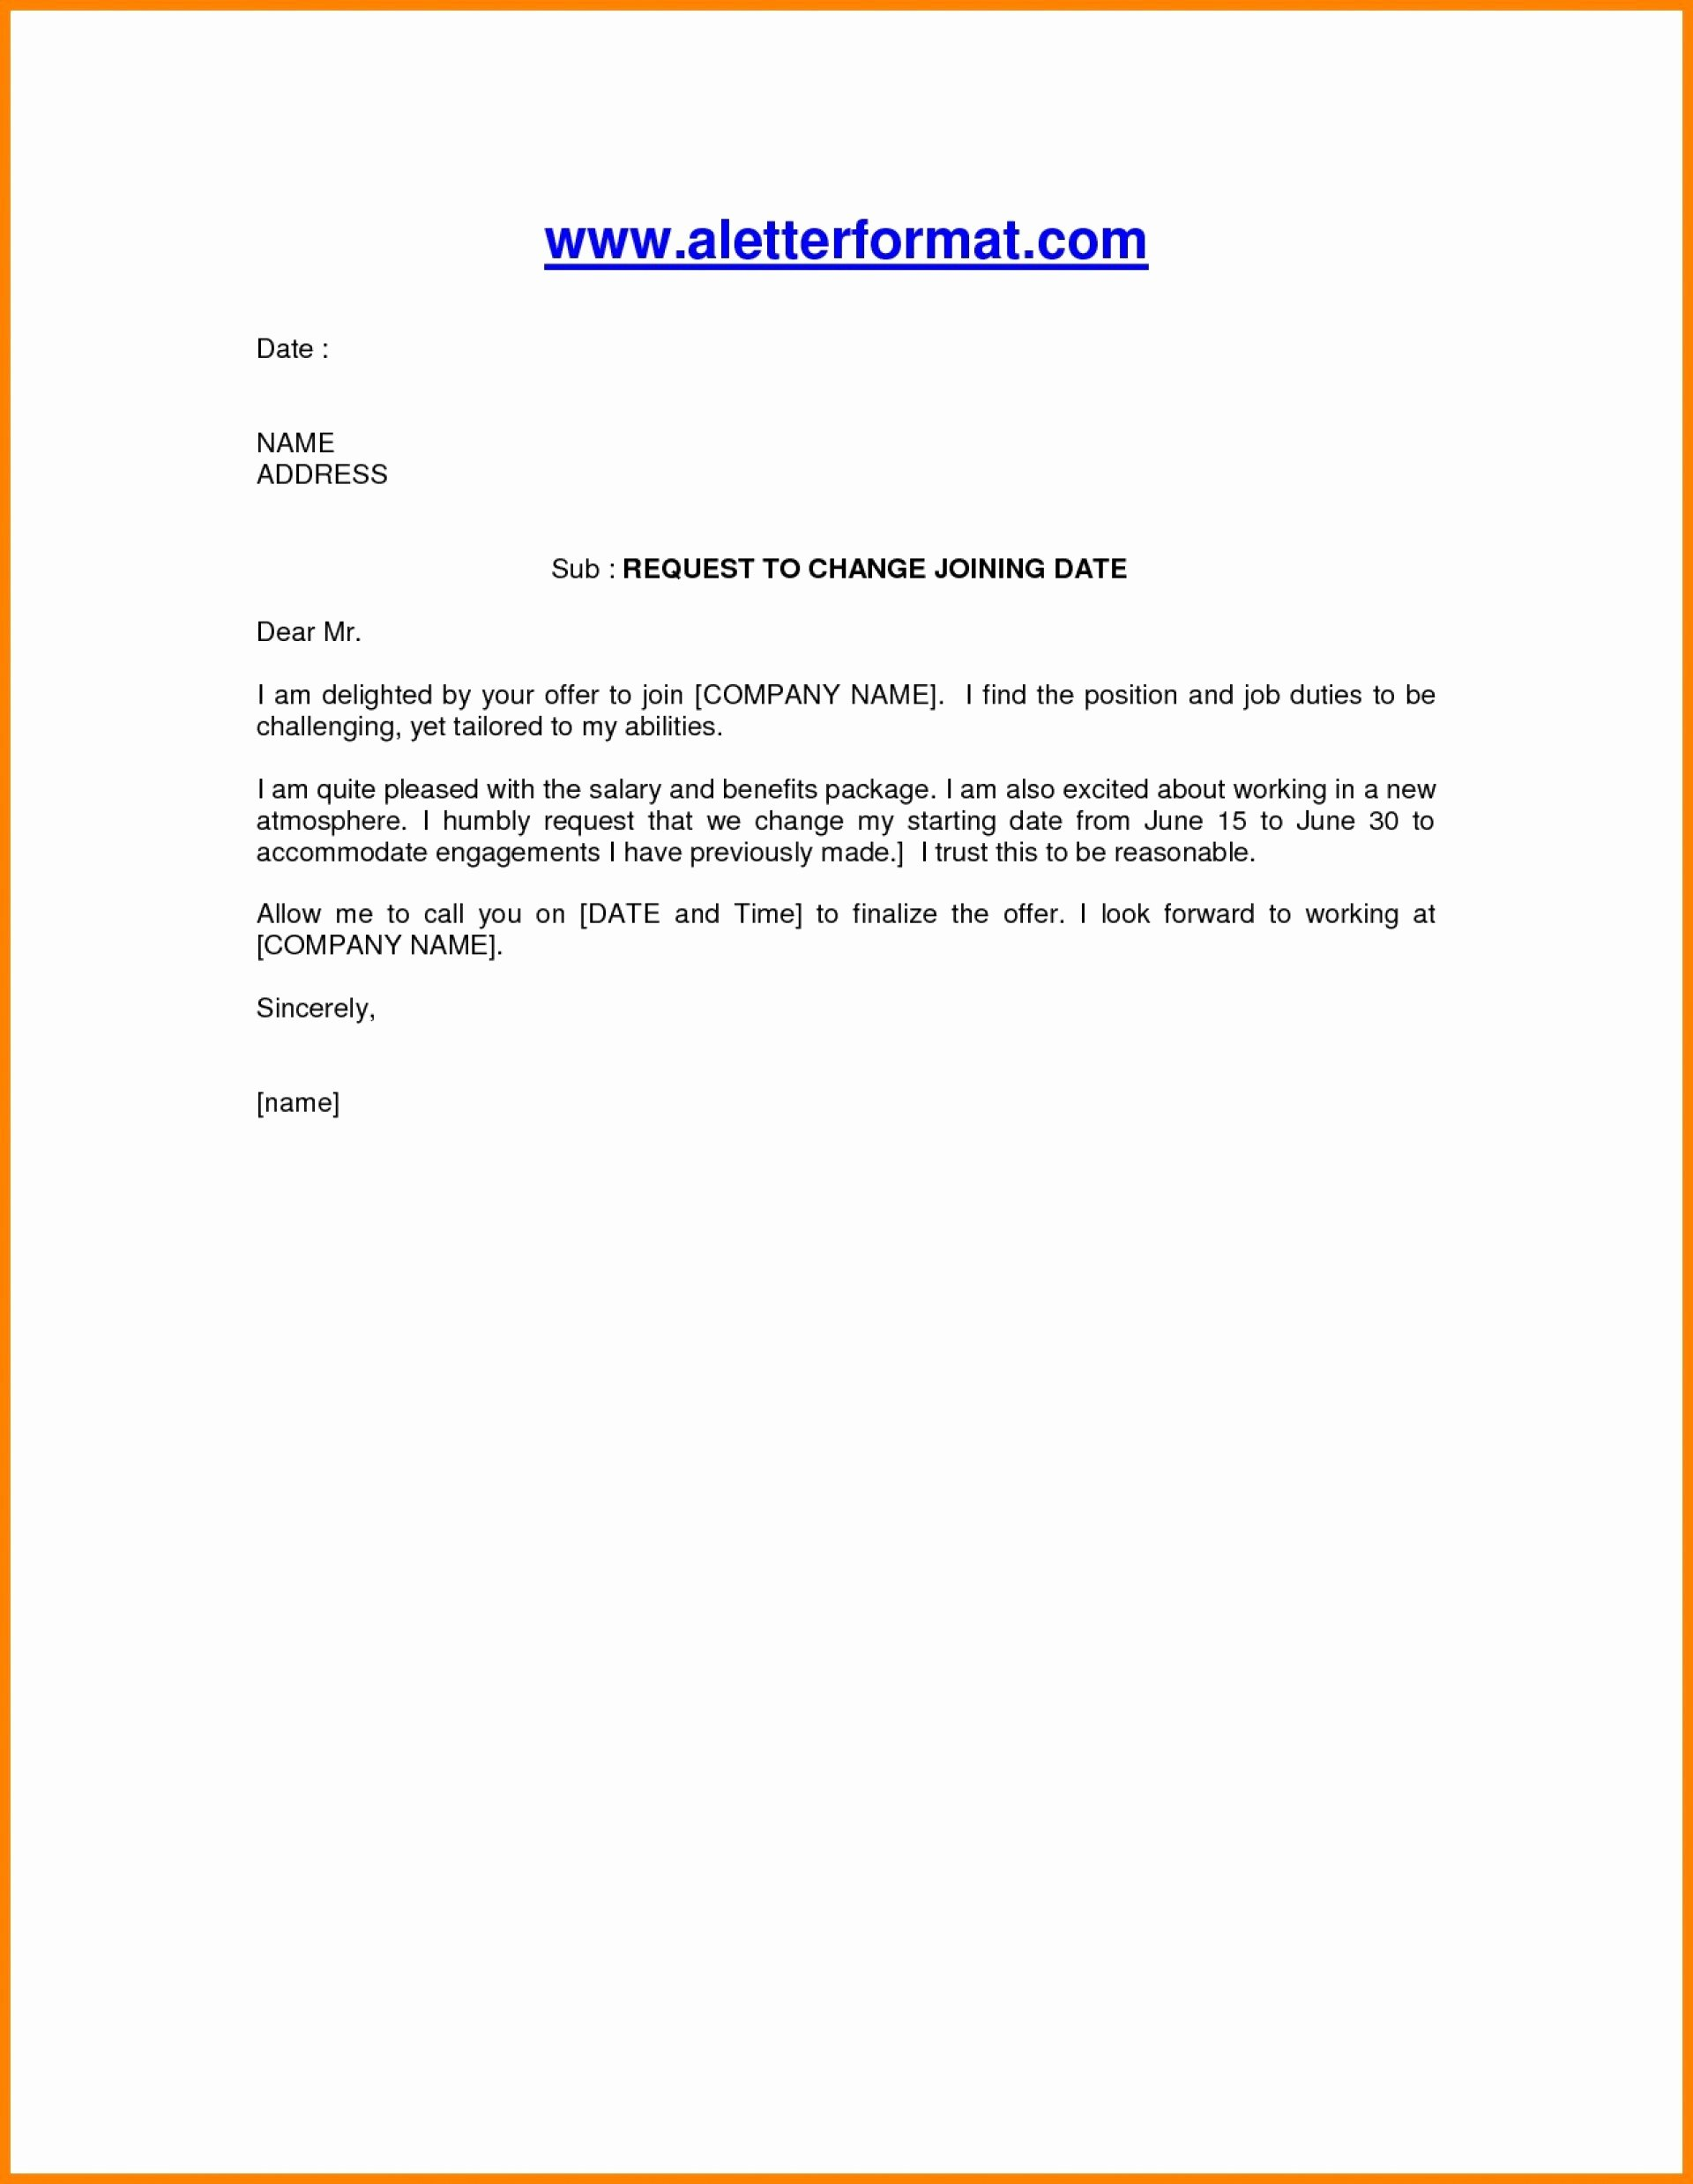 Letter format On Word Elegant Appoint Letter format Appointment Pdf File Simple In India